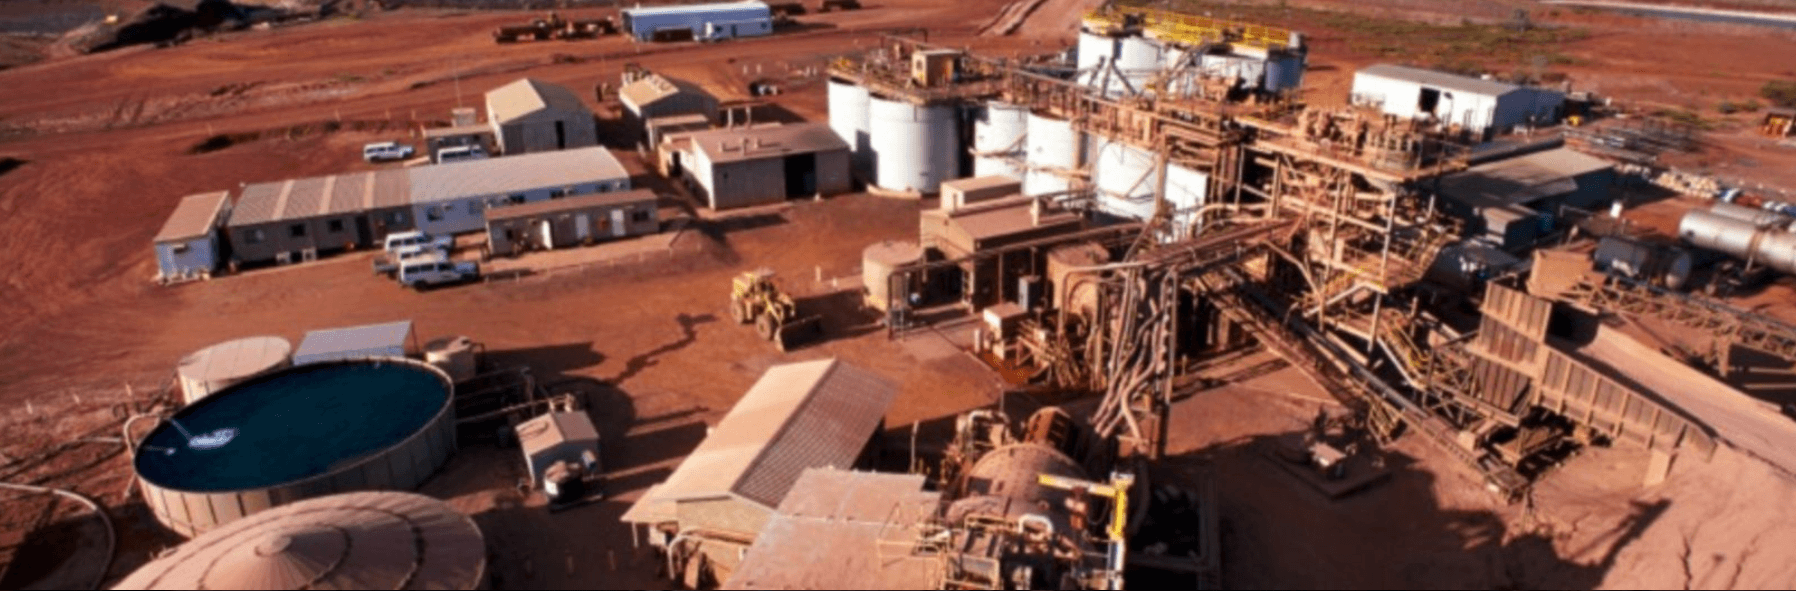 Kinross Gold: Digging Into The FY-2019 Report - Kinross Gold Corporation (NYSE:KGC) | Seeking Alpha